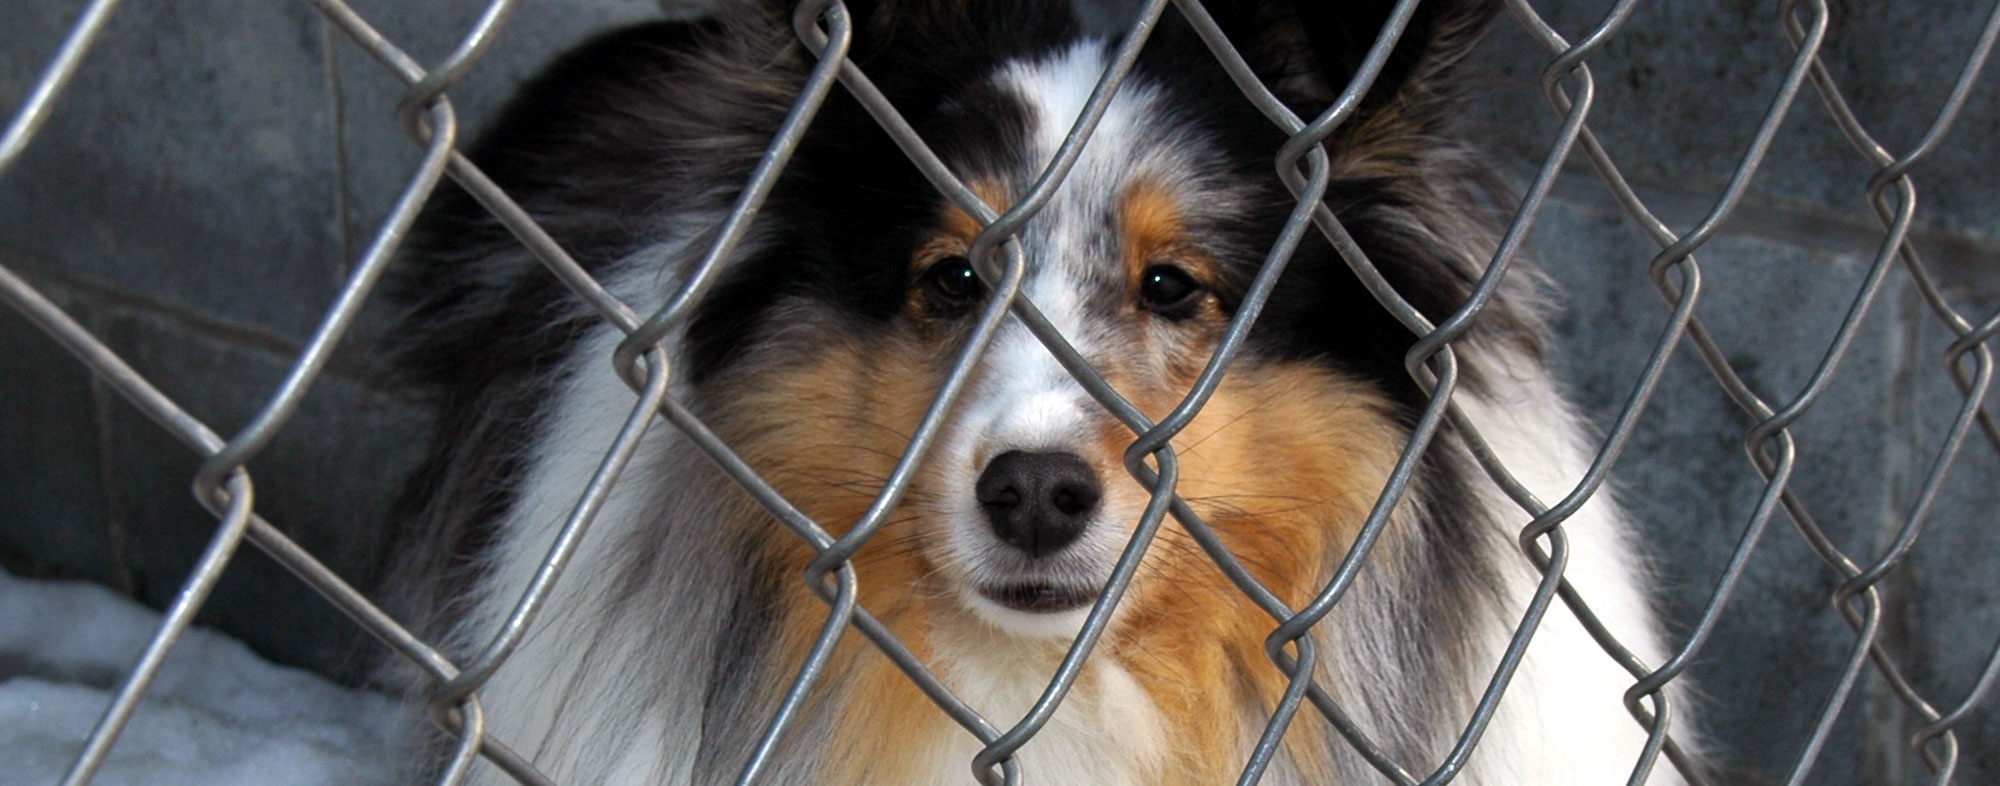 If your dog has kennel cough, you should isolate them from other dogs